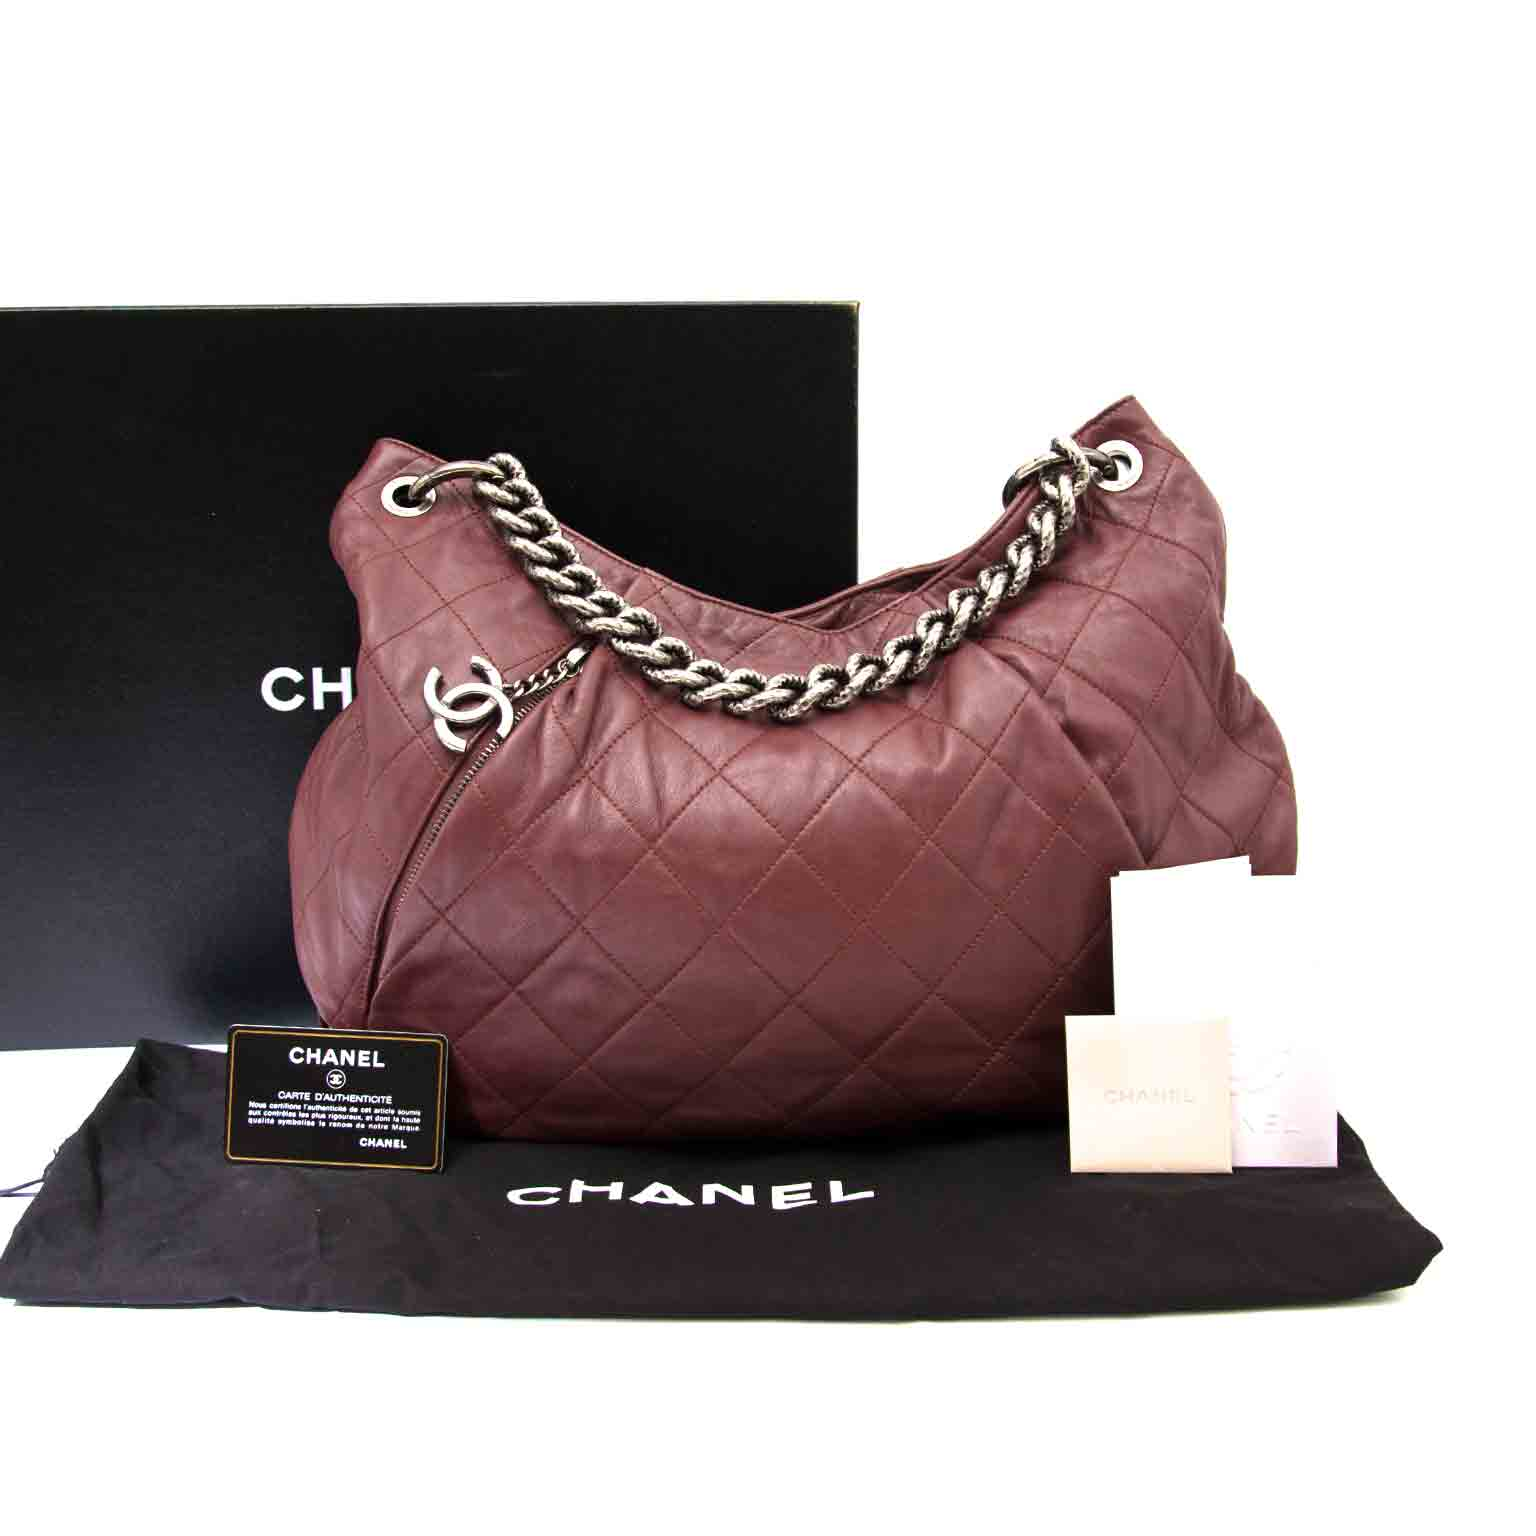 We buy and sell your secondhand luxury handbags from brands such as Chanel for the best price